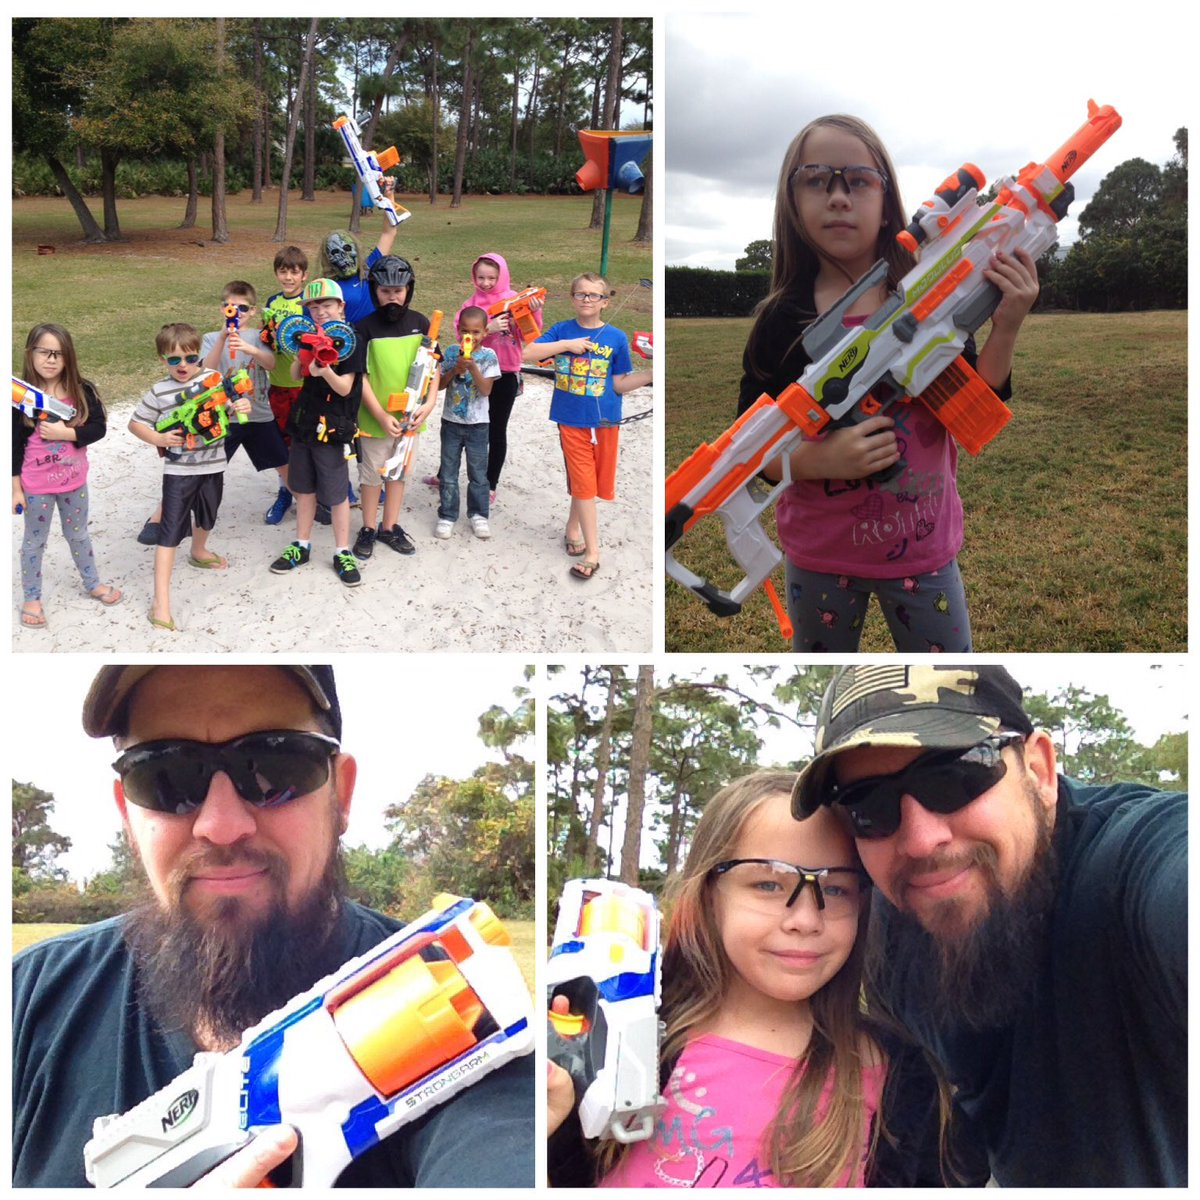 Got to spend the afternoon with my little princes at Nerf Day! That was fun! #NerfDay#FamilyFirst #ProudDad<br>http://pic.twitter.com/QuxLbImDOp